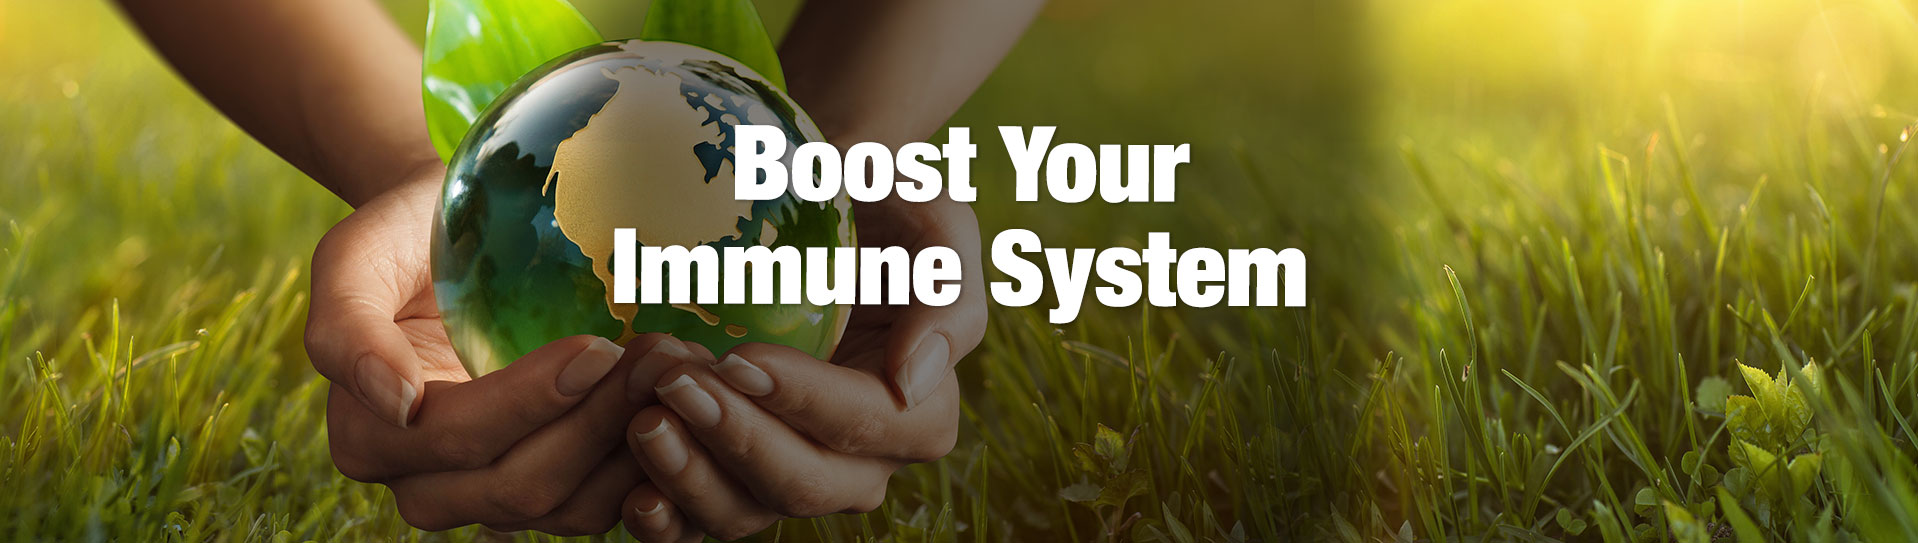 boost-your-immune-system